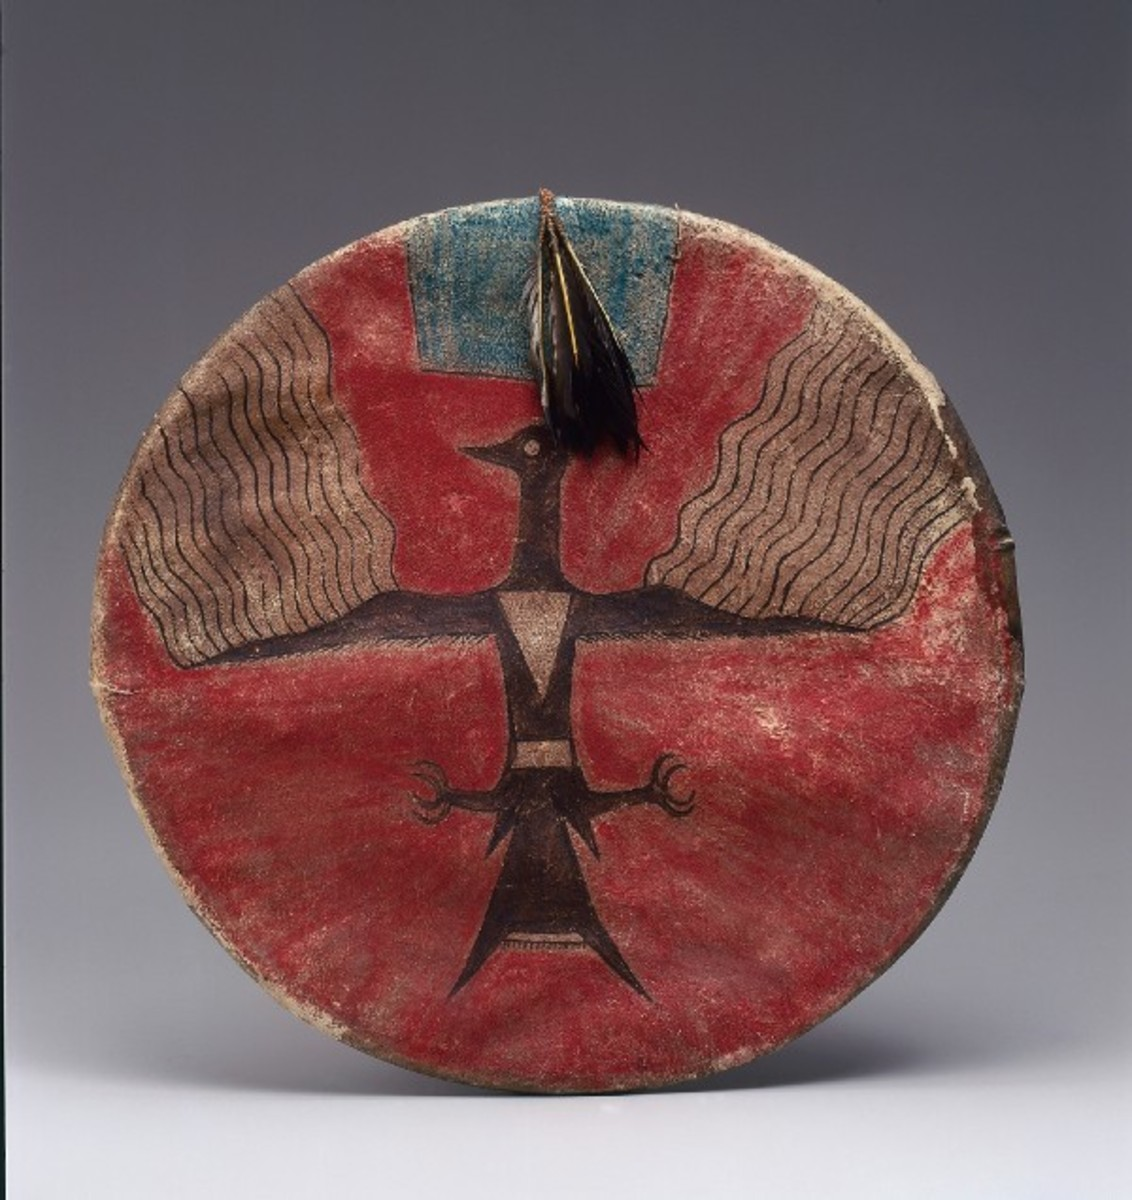 A painted shield from Charles and Valerie Diker's promised gift to the Met. (Photo: Courtesy of the Metropolitan Museum of Art)